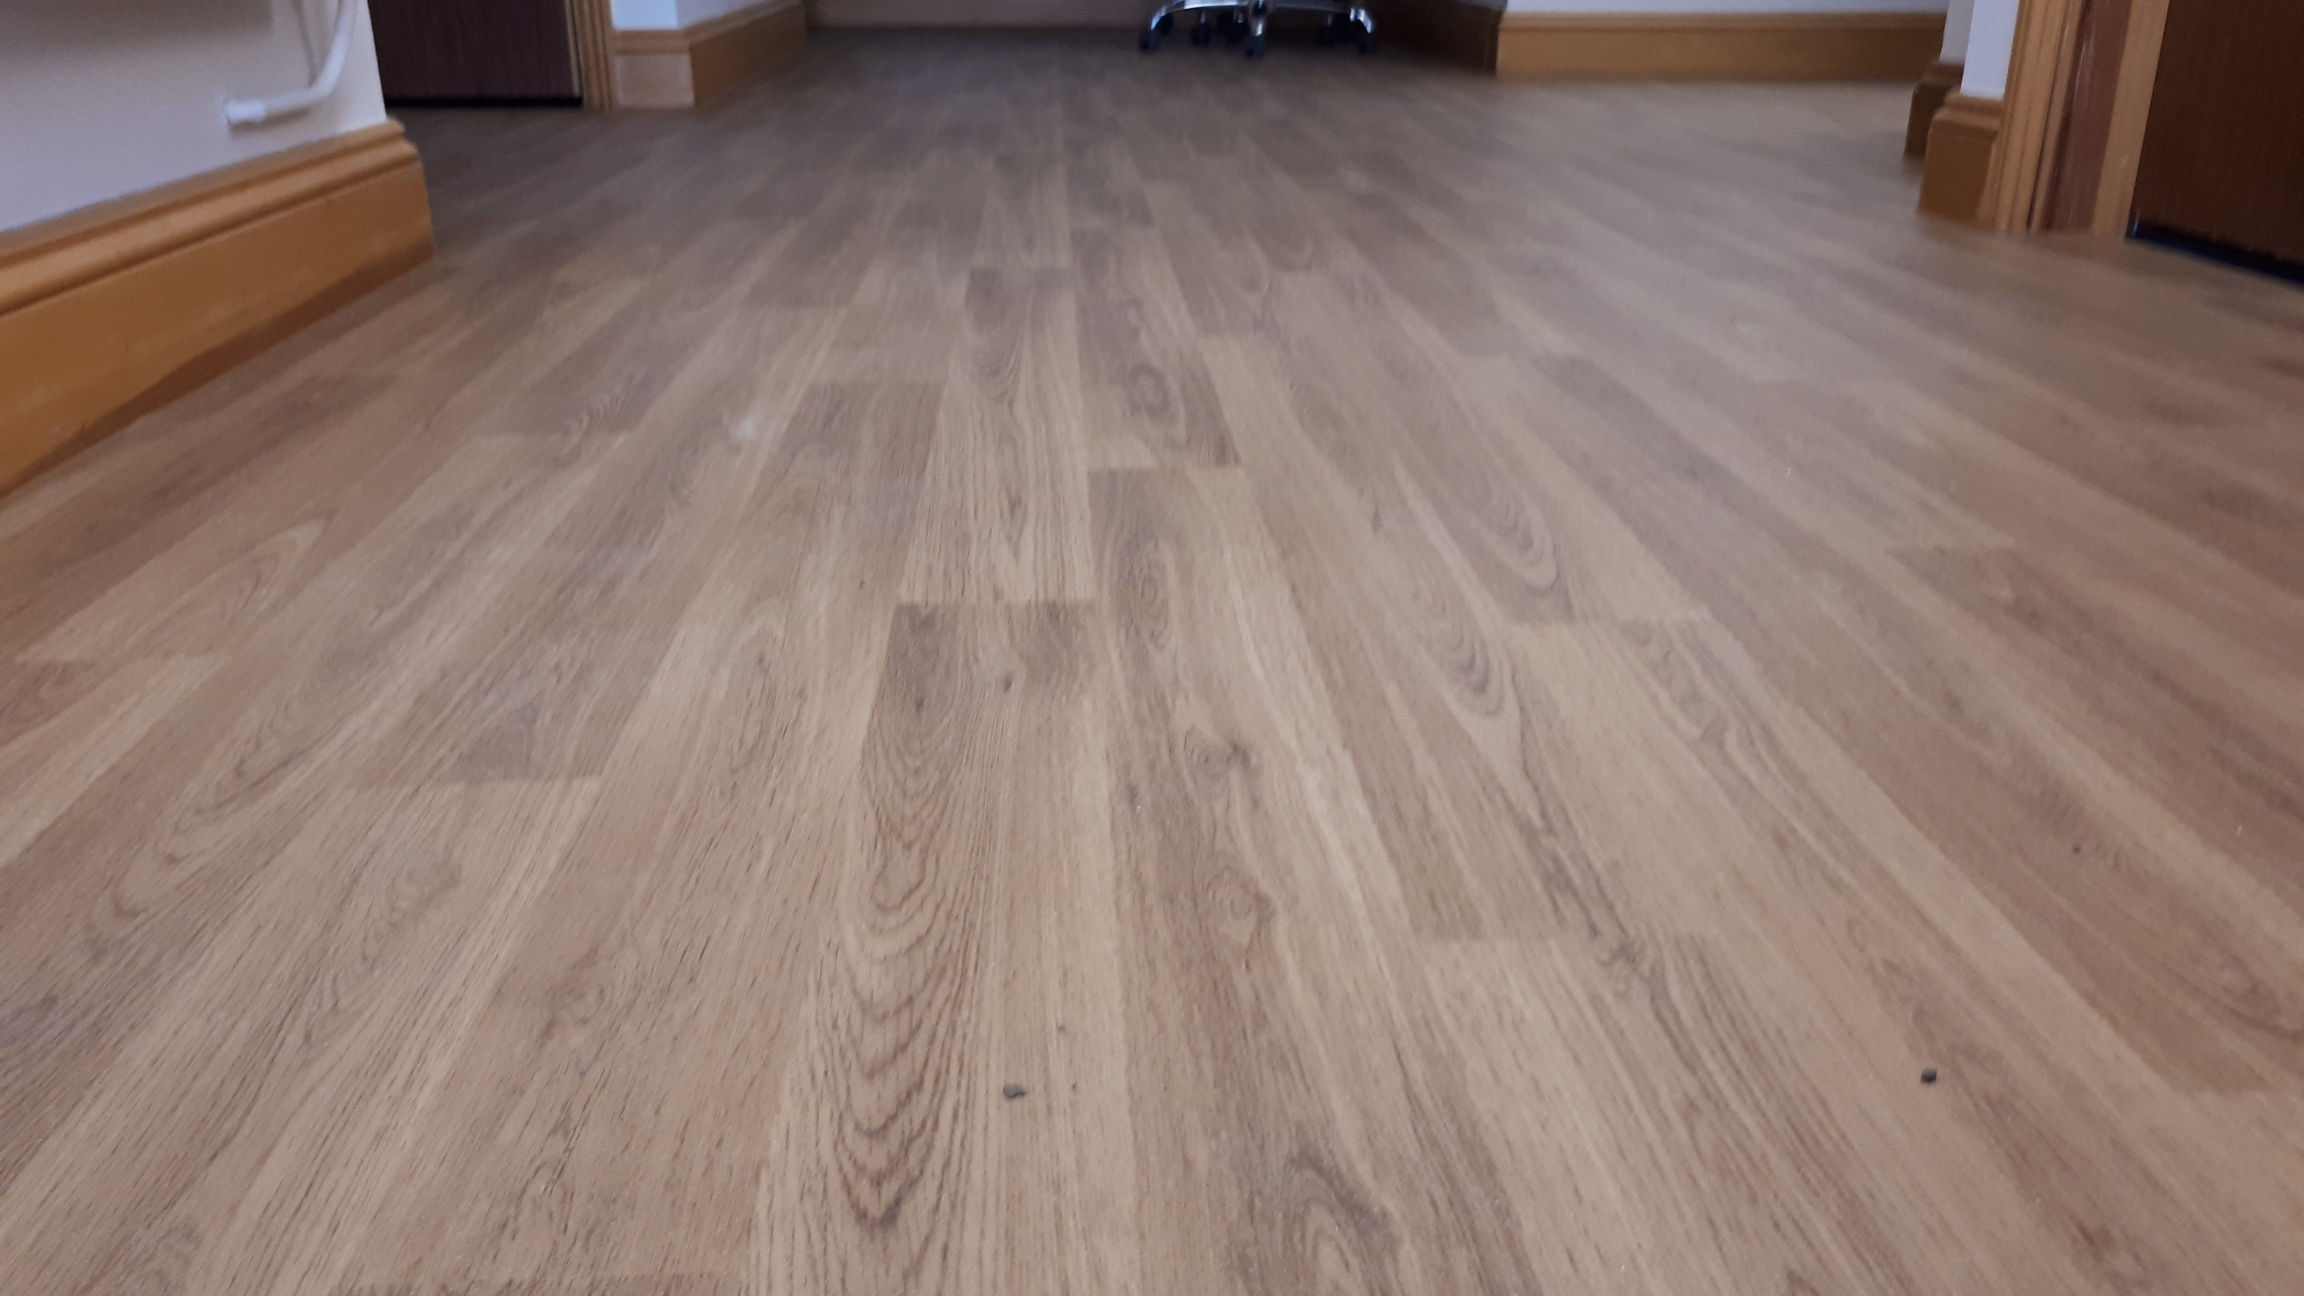 Oakhive Carpet And Flooring Recent Work